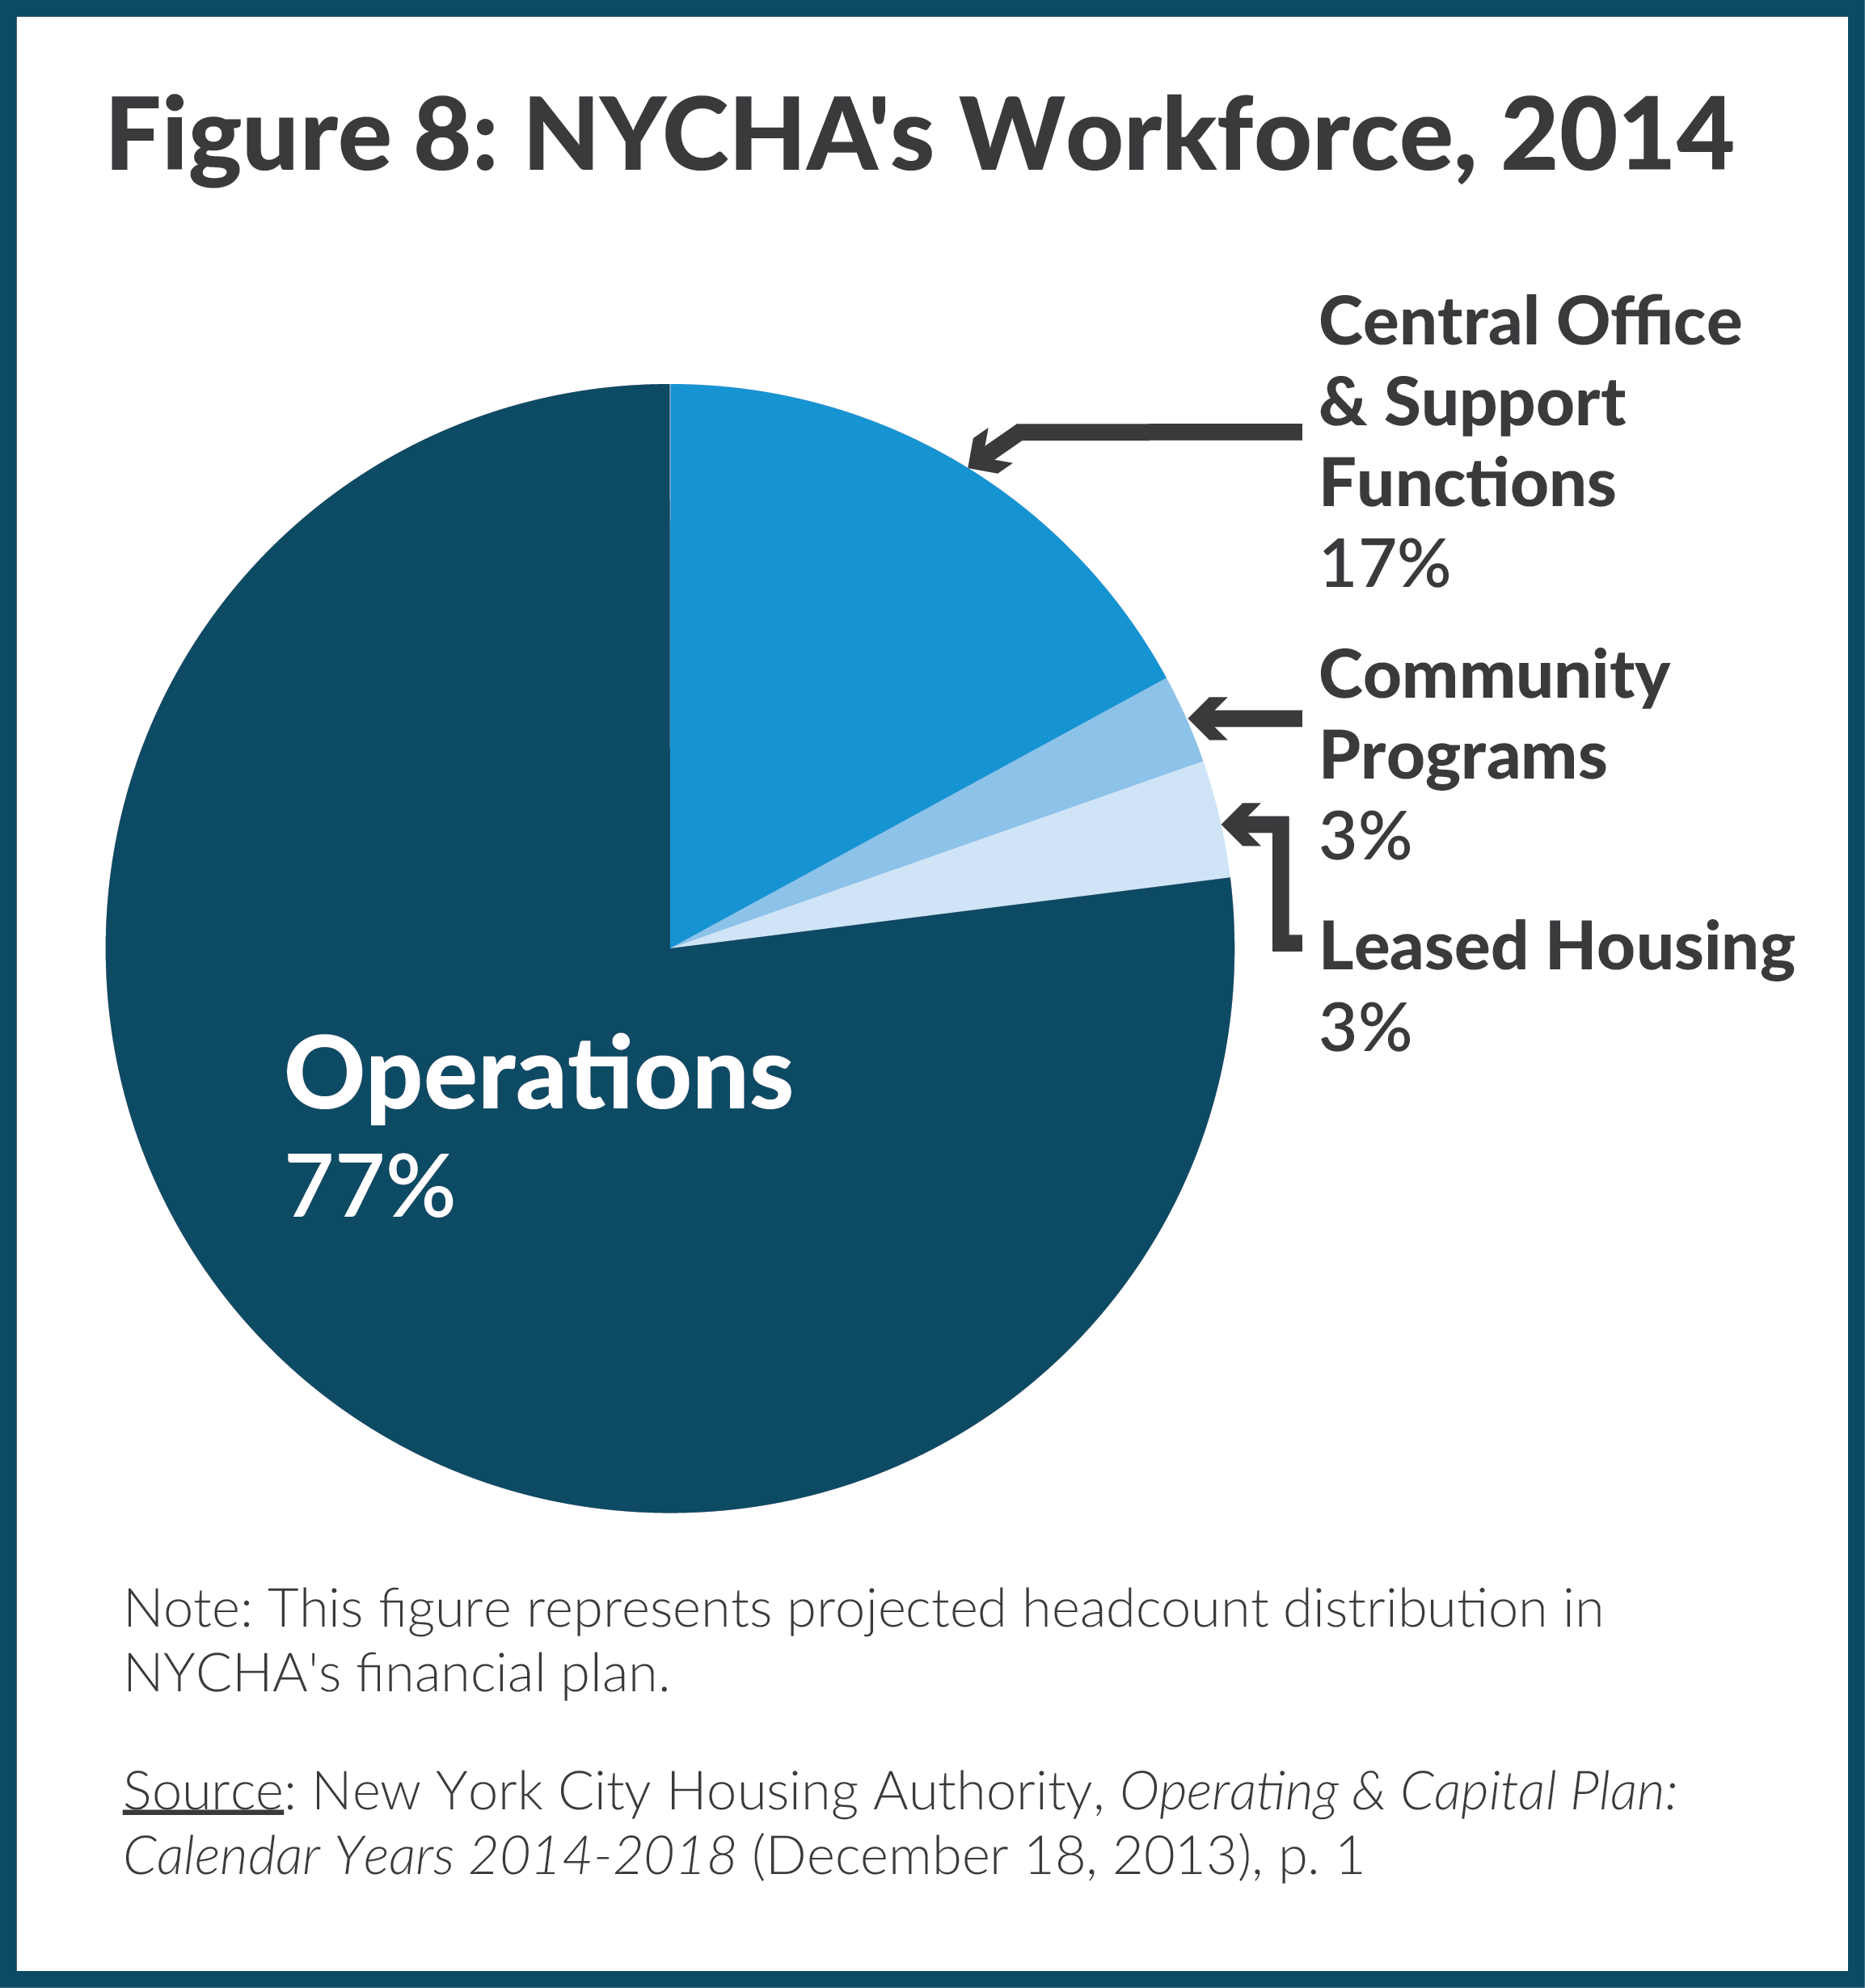 Figure 8: NYCHA's Workforce, 2014